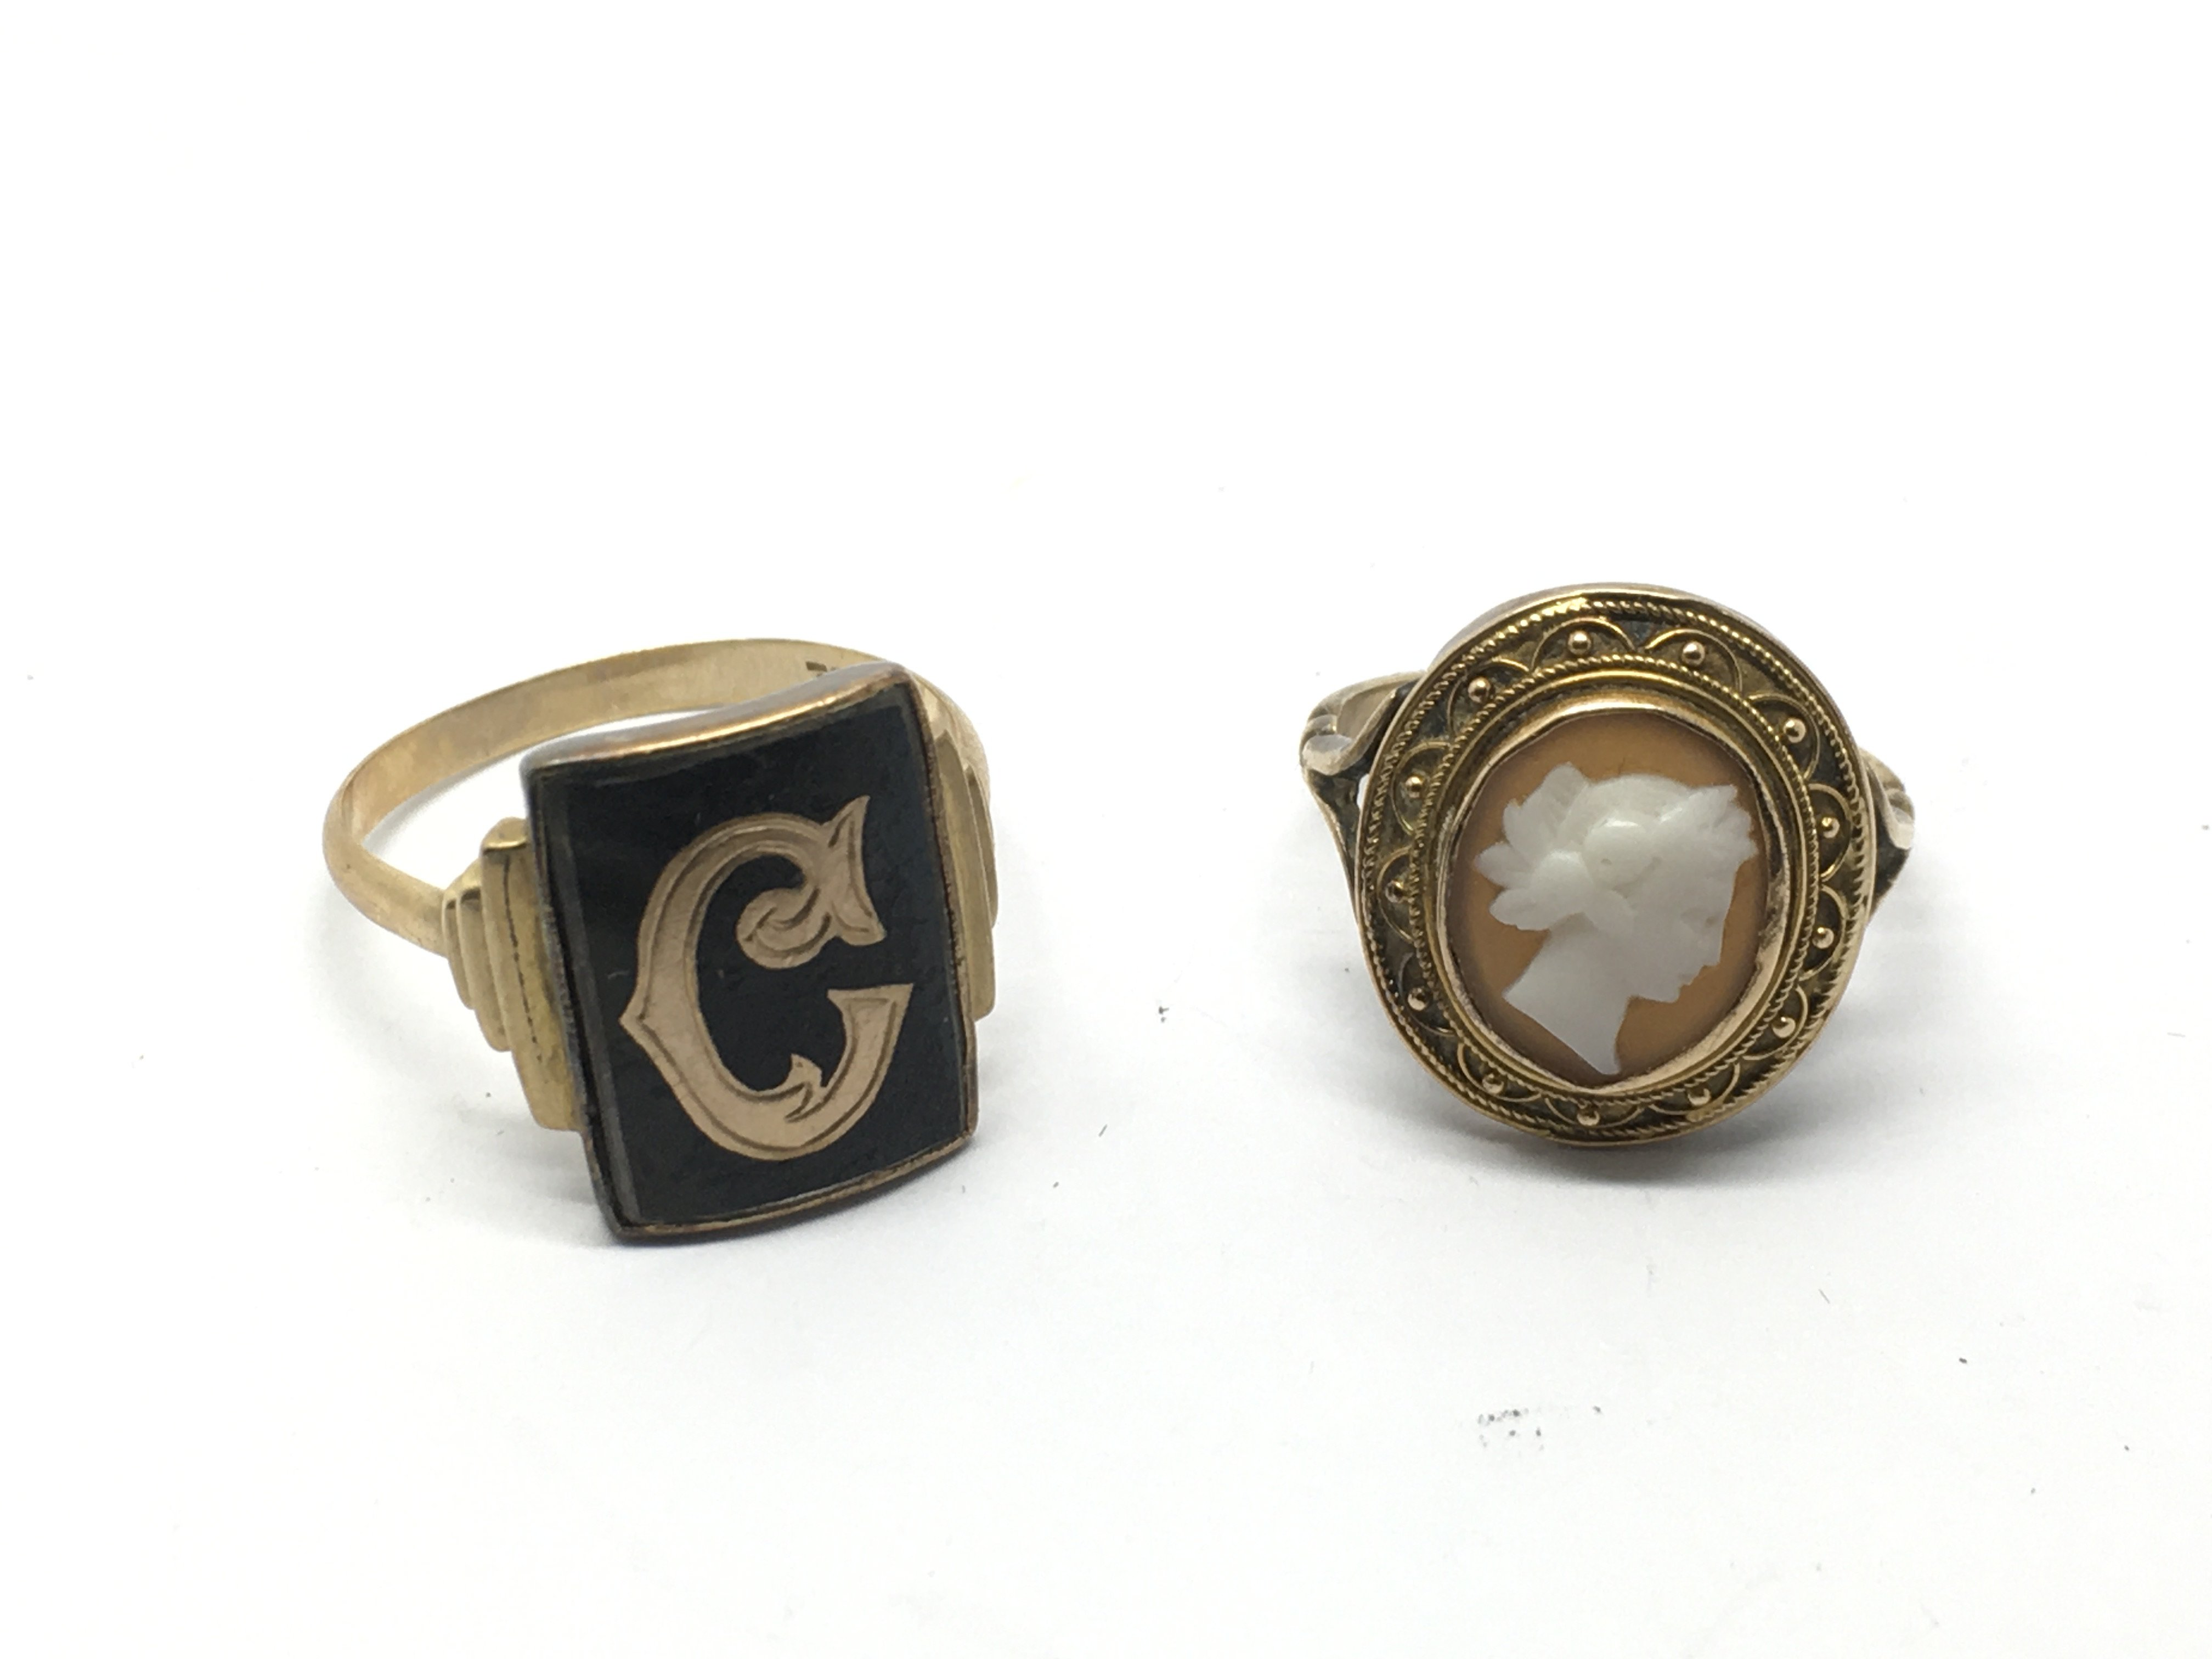 A 9ct gold black enamel ring and an unmarked gold